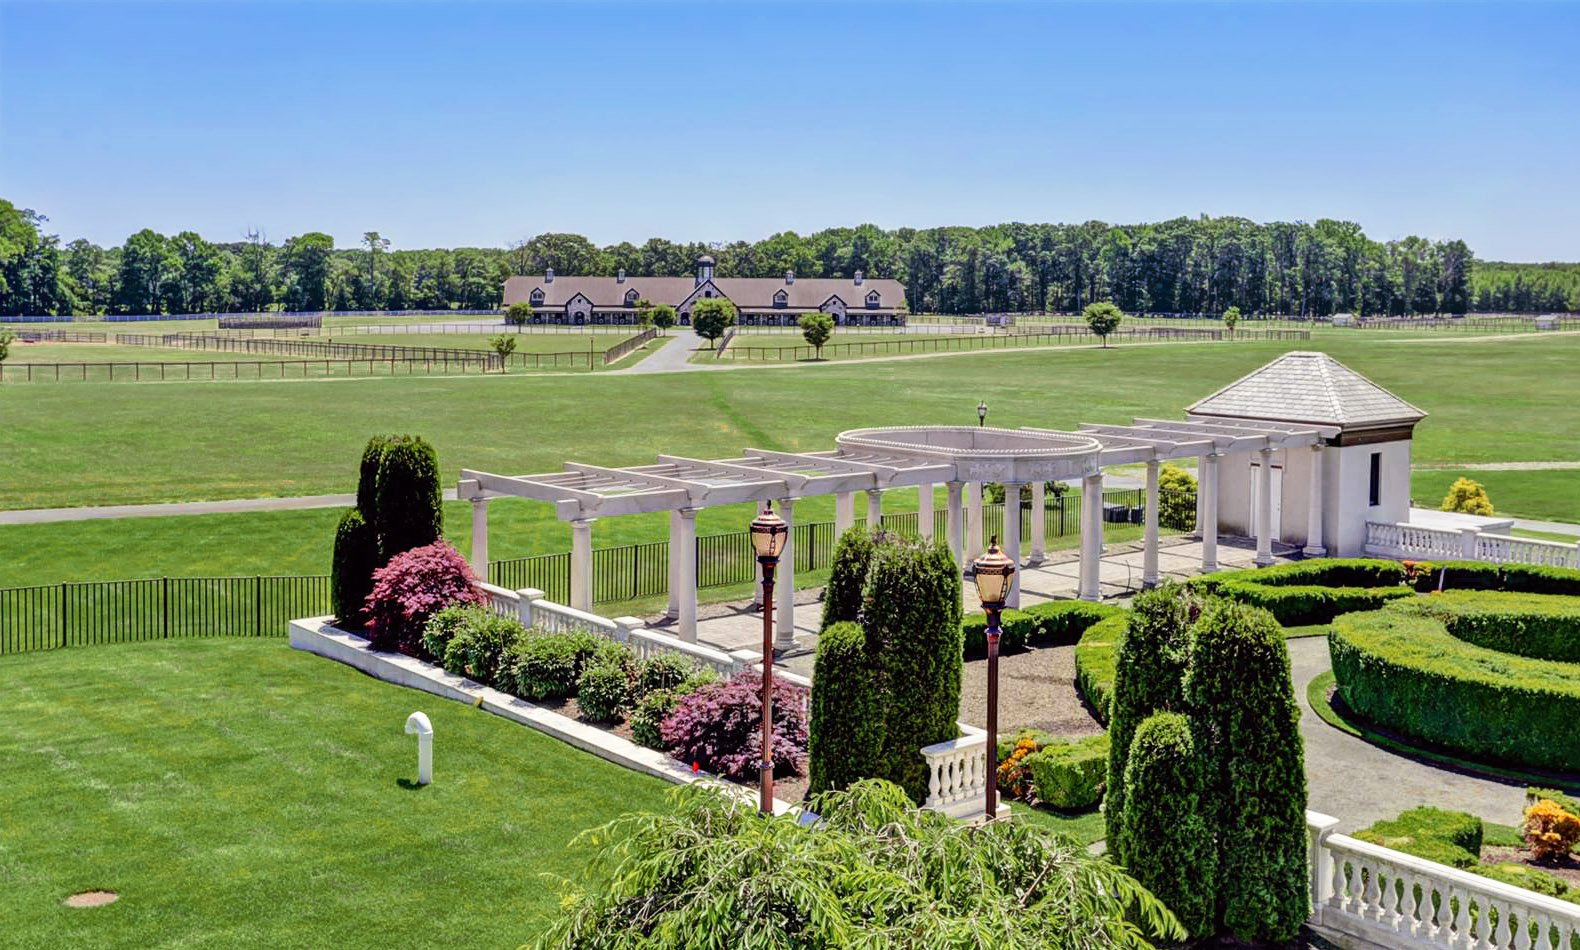 Discovery Manor, a 160-acre horse farm dedicated to the breeding, sale, and racing of Thoroughbreds, is strategically located in the heart of the Northeast horse-racing industry.